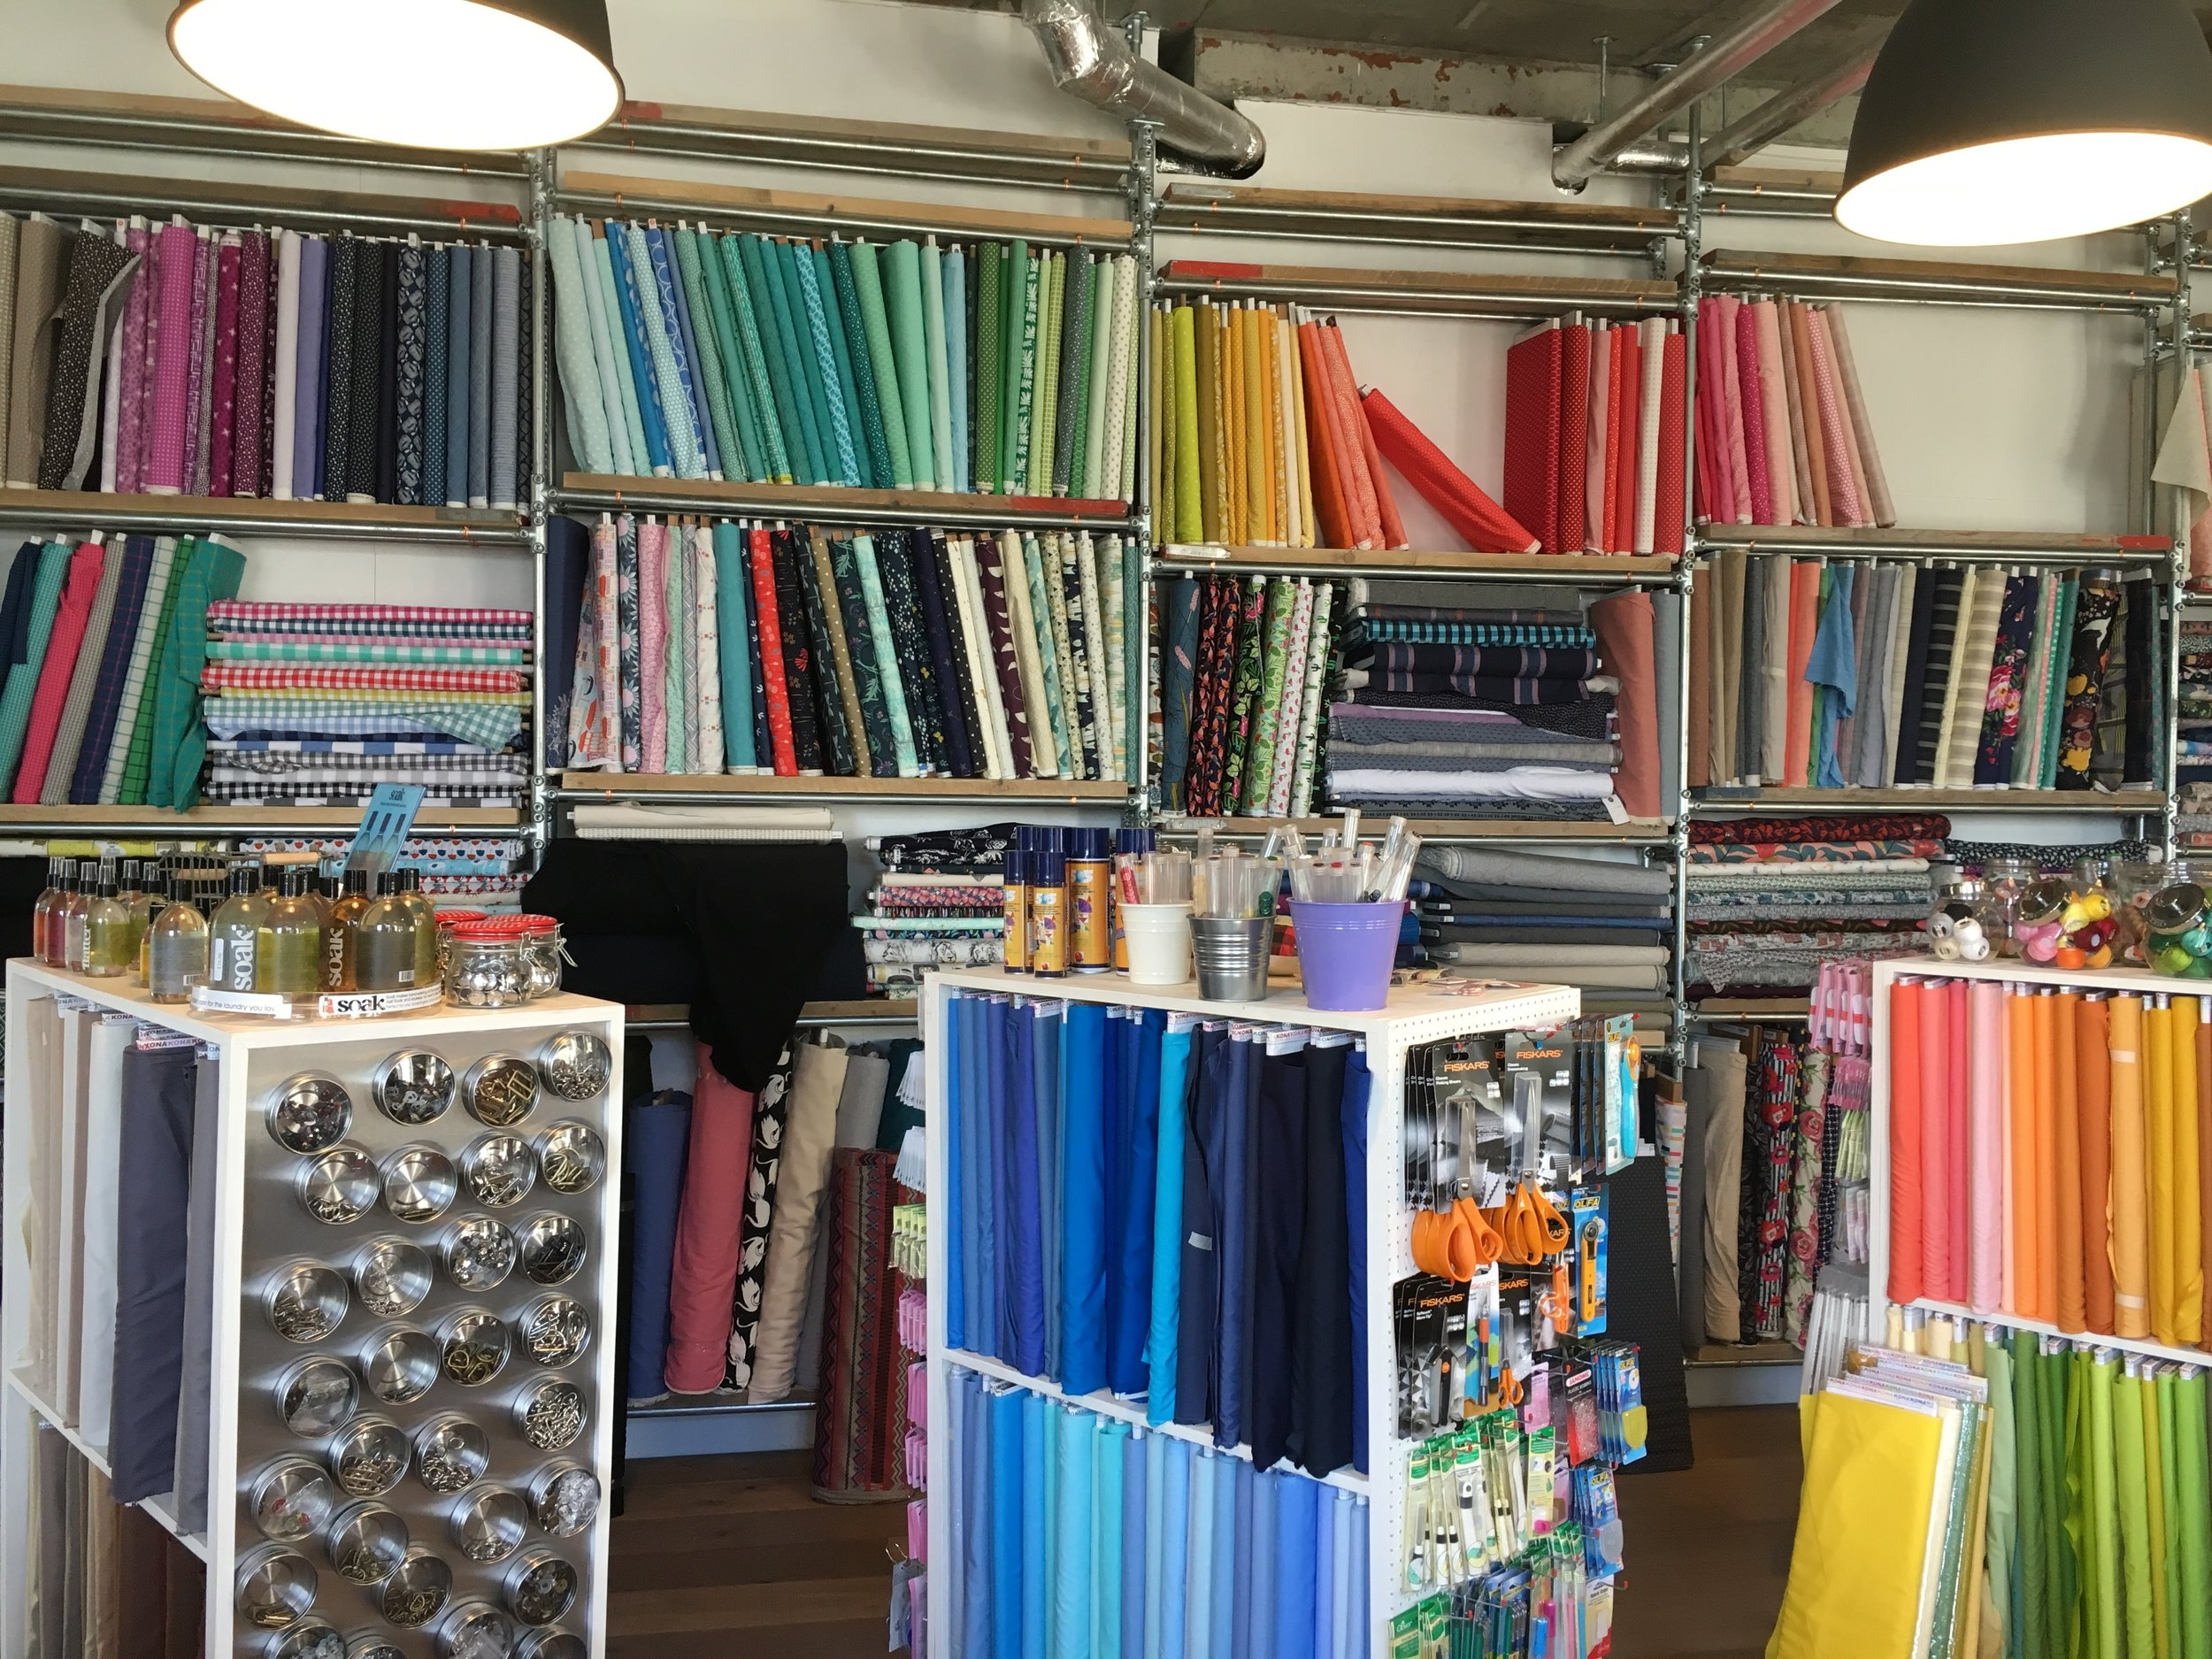 Even more fabric to tempt those who are multi-craftual!